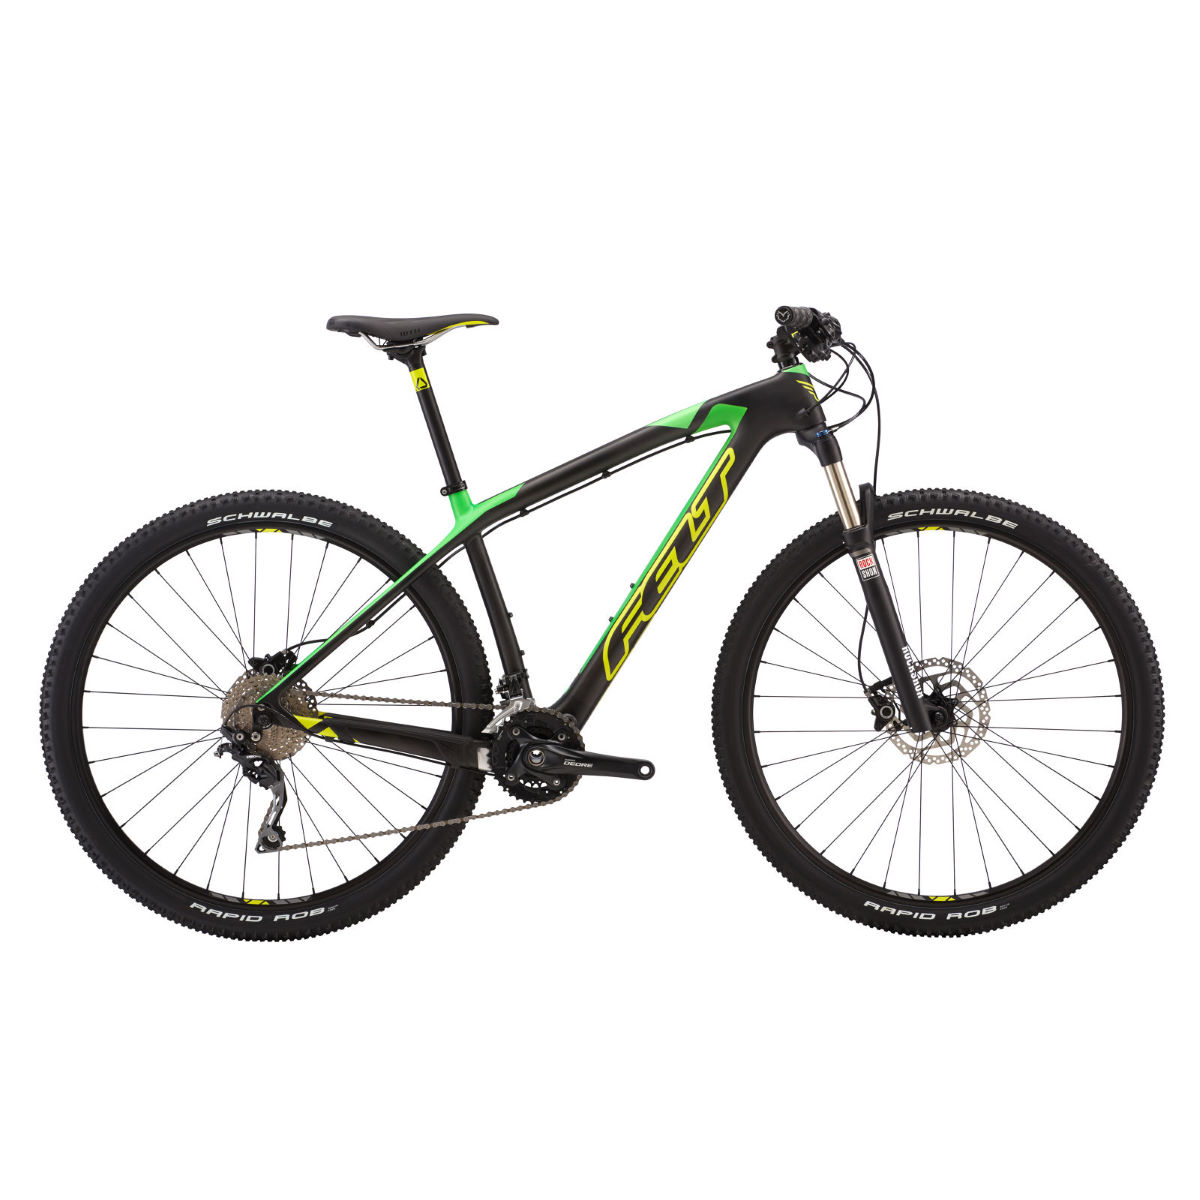 VTT Felt Nine 5 (2016) - 18'' Carbon/Green VTT semi-rigides